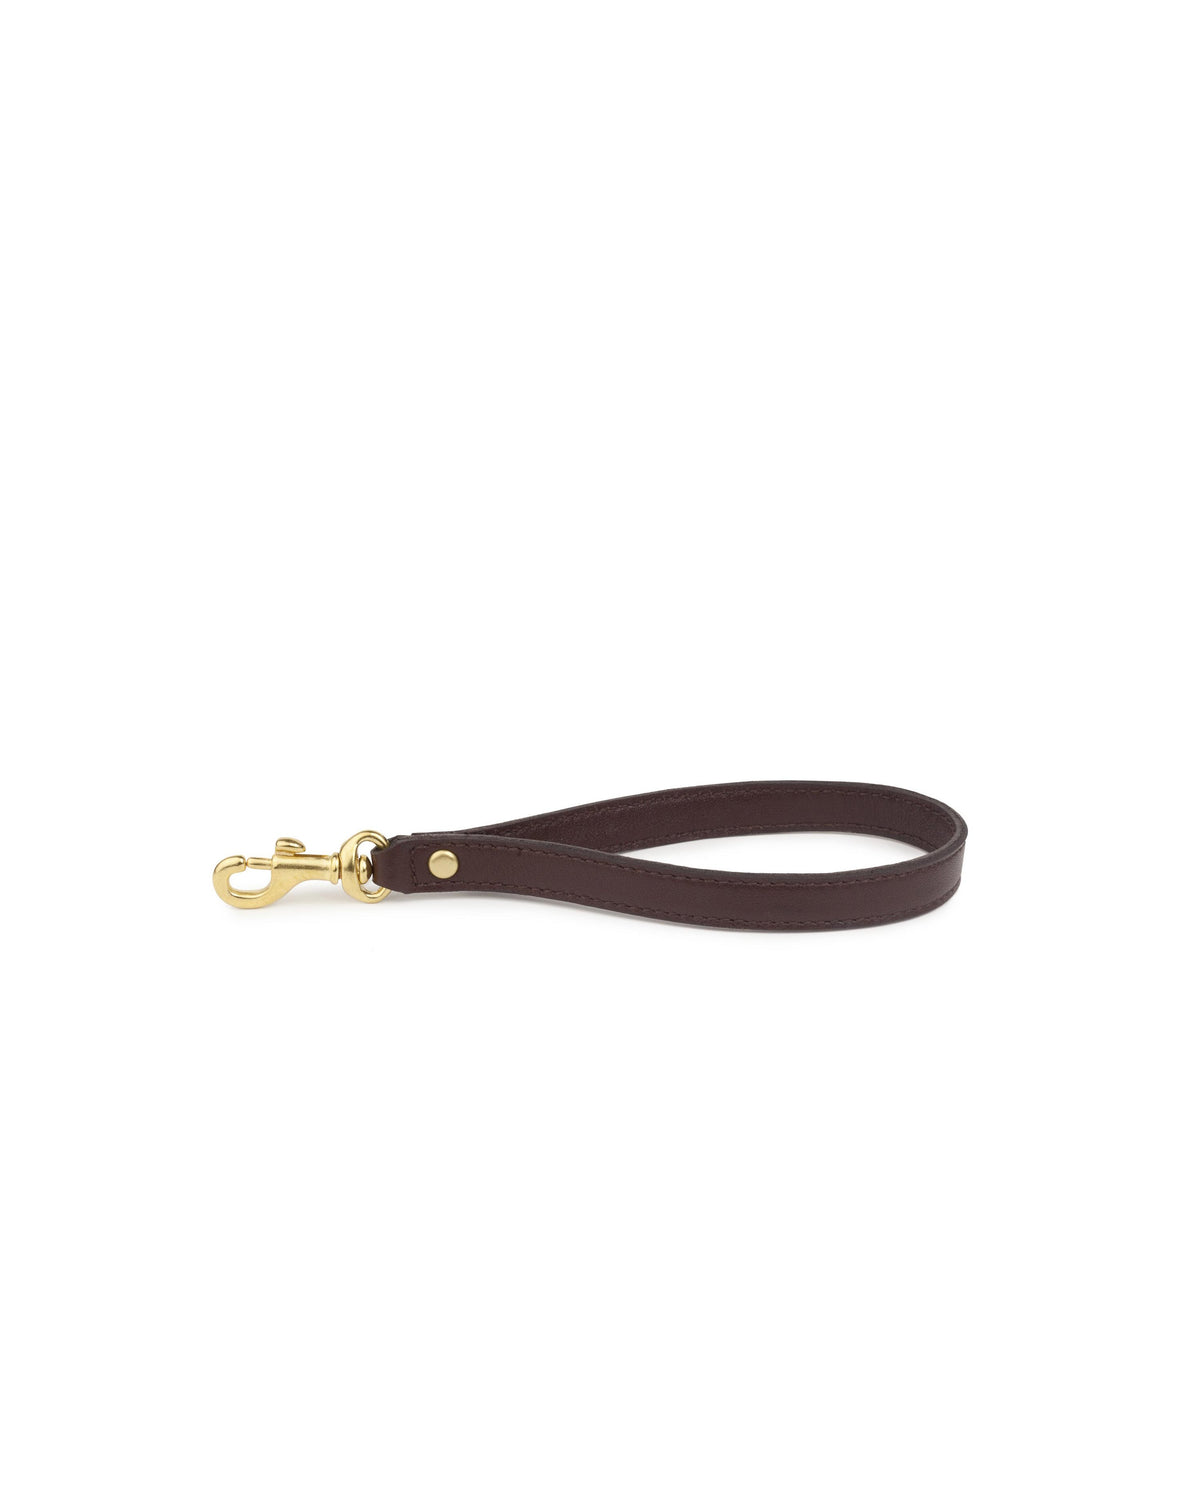 WRIST STRAP in Chocolate Napa